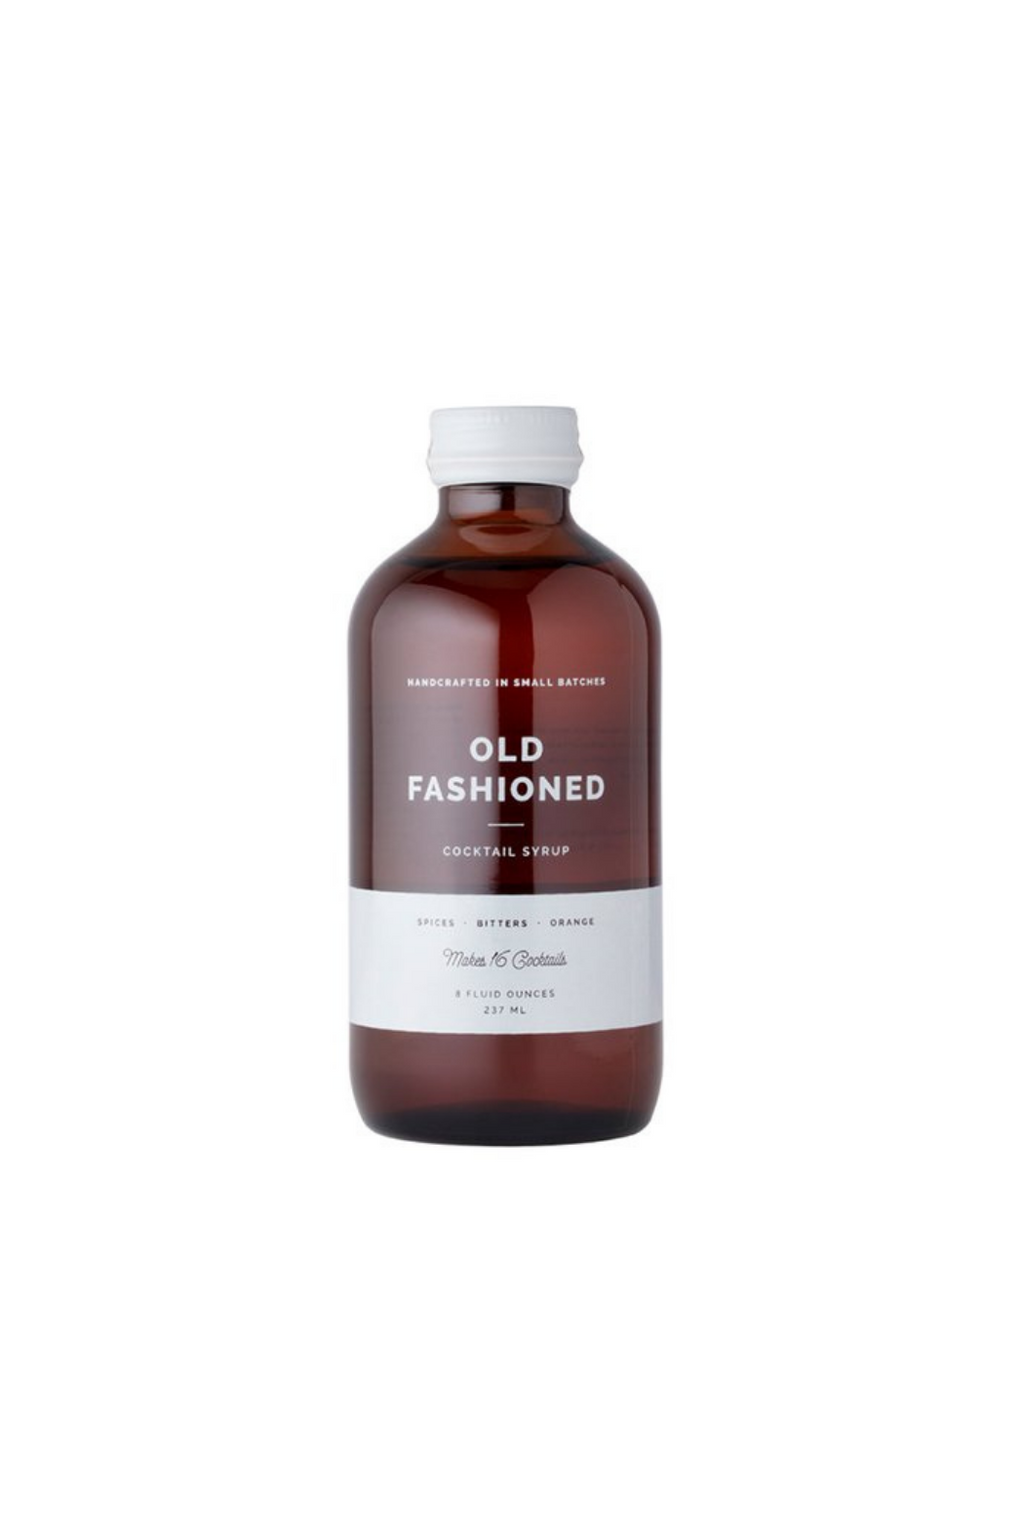 W&P Old Fashioned Craft Cocktail Syrup 8oz